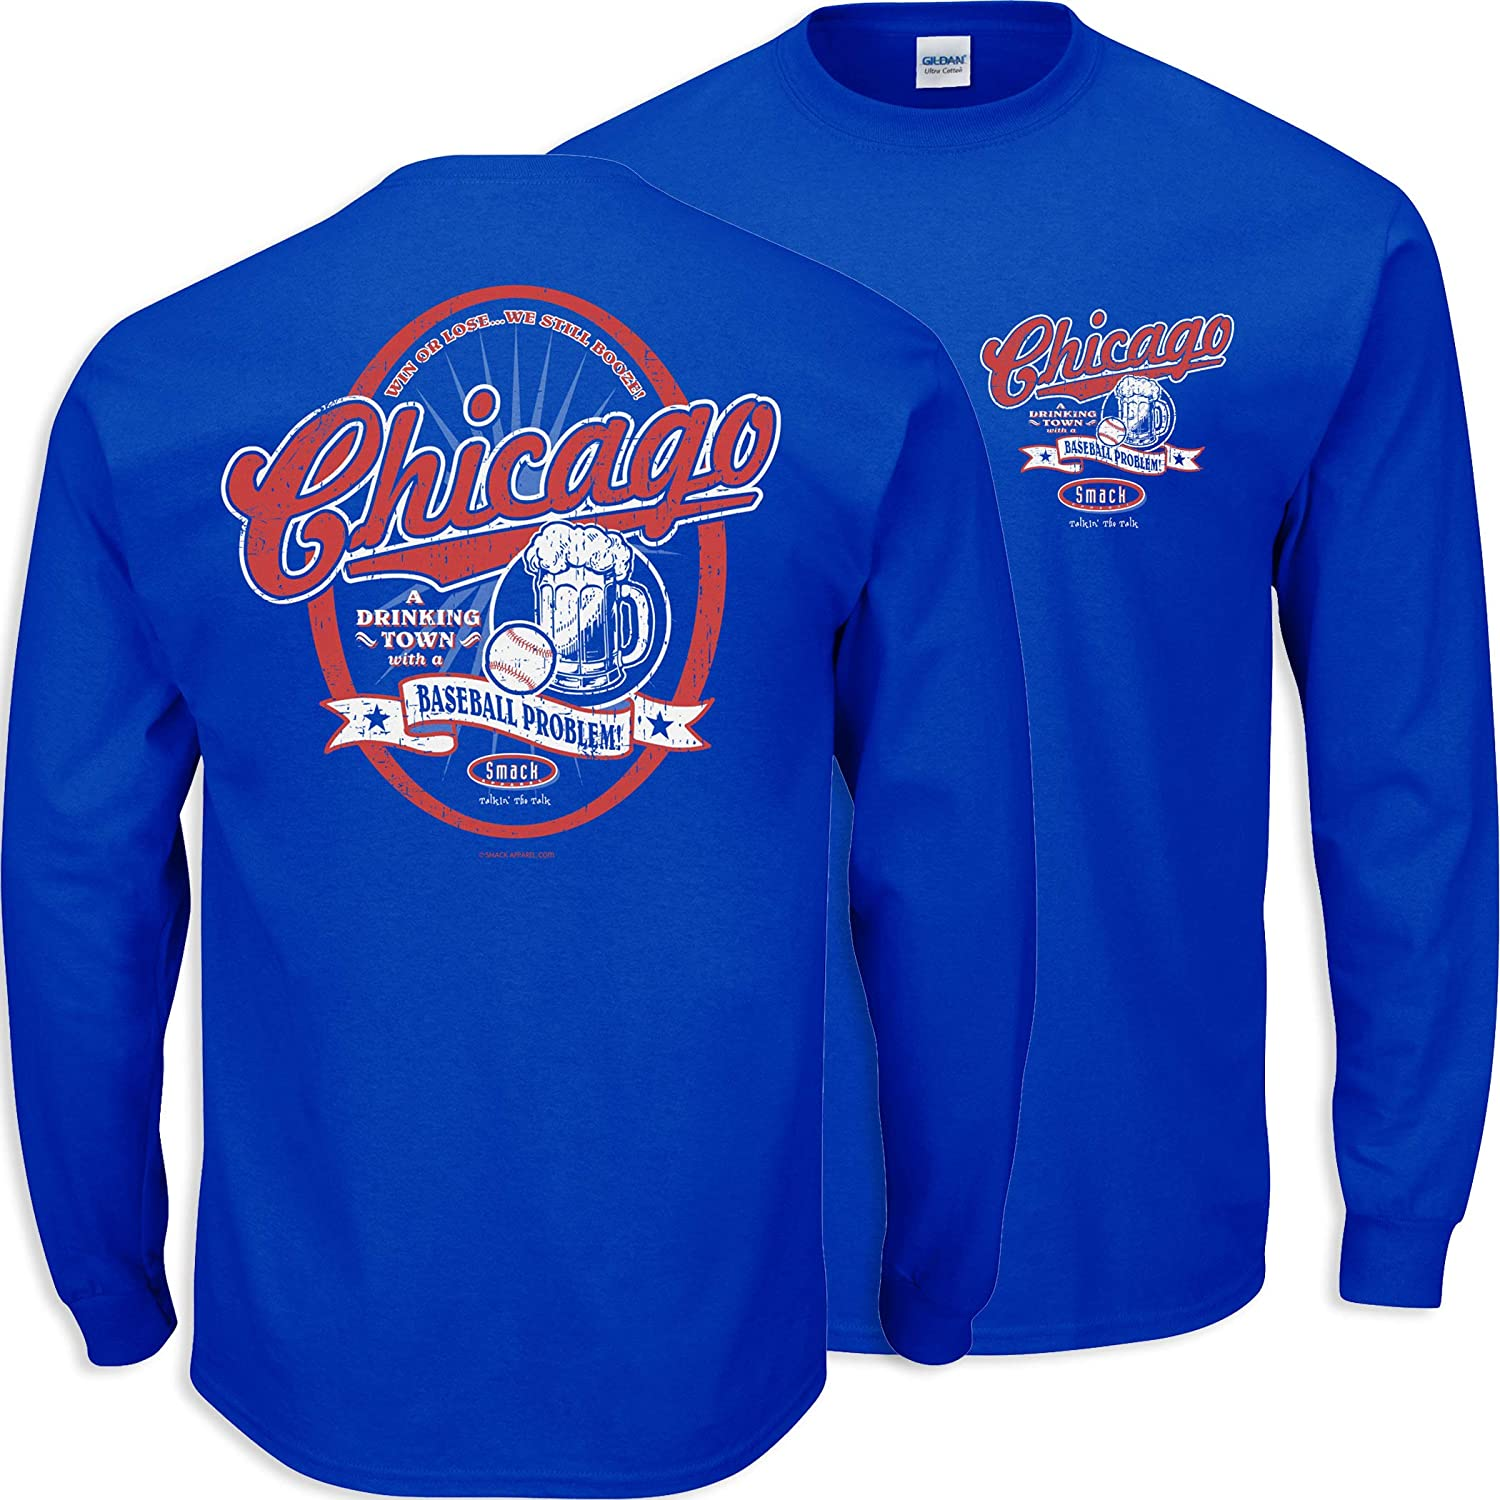 Chicago A Drinking Town with a Baseball Problem Royal Shirt Smack Apparel Chicago Baseball Fans S-5X